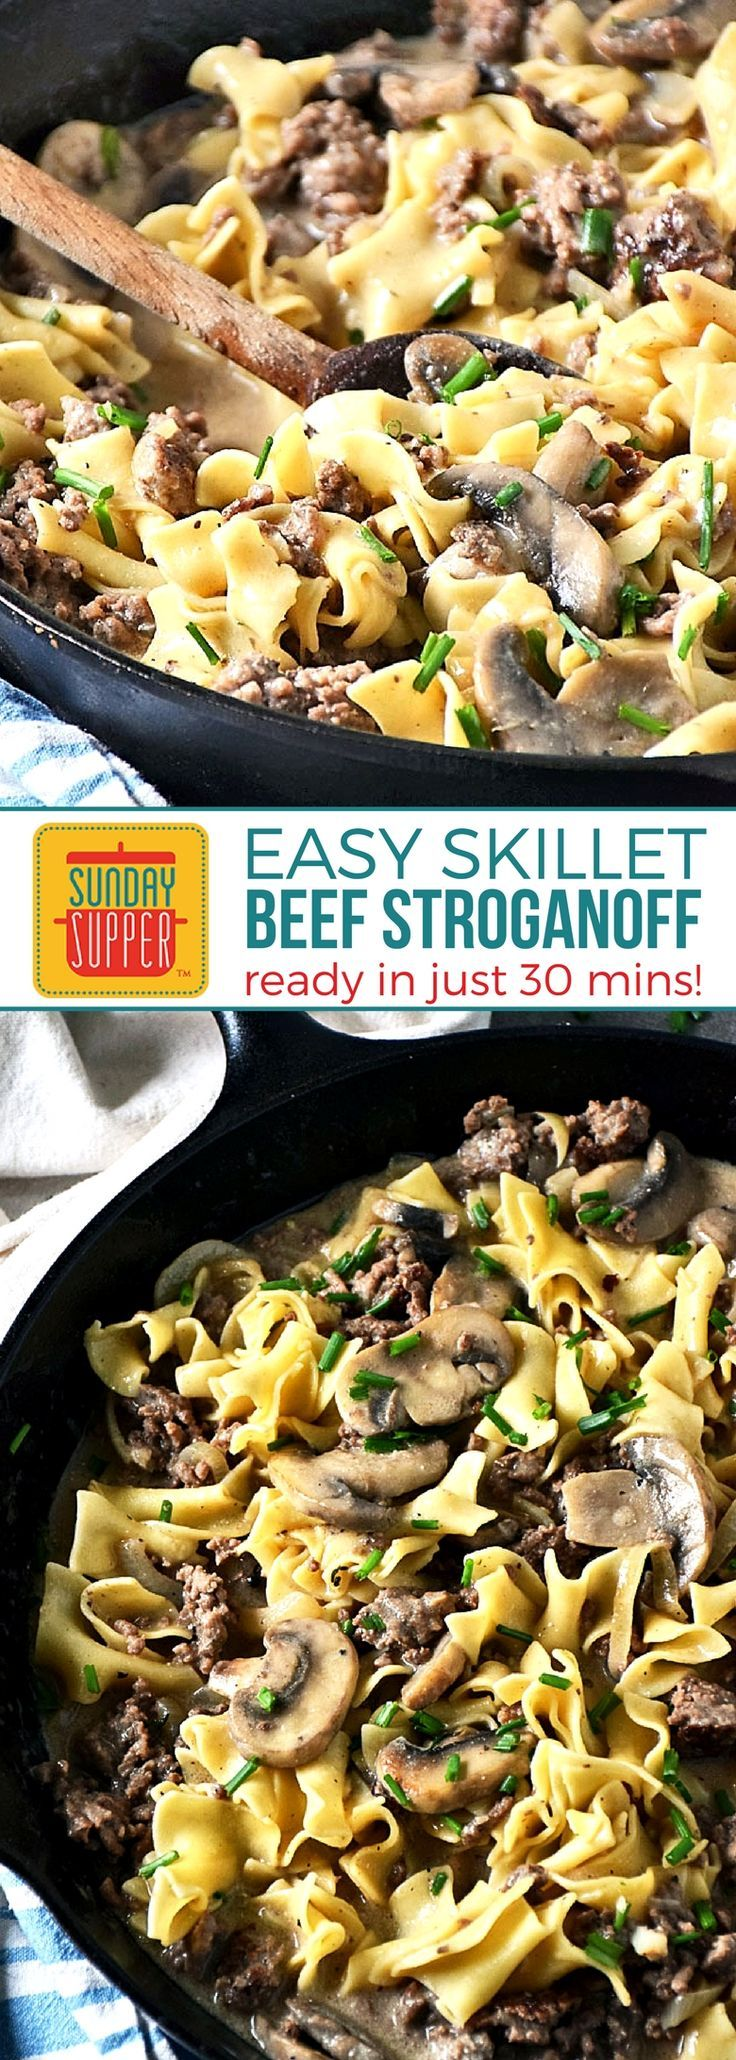 Ready in just 30 minutes, our Ground Beef Stroganoff is an easy recipe perfect for any night of the week. This budget-friendly twist on a traditional beef stroganoff recipe uses fresh ingredients for big flavor! No soup can in this recipe! A family favorite beef and pasta recipe with a deliciously tangy mushroom sauce perfect for your Sunday supper! #BeefRecipes #PastaRecipes #BeefStroganoff #EasyRecipes #SundaySupper